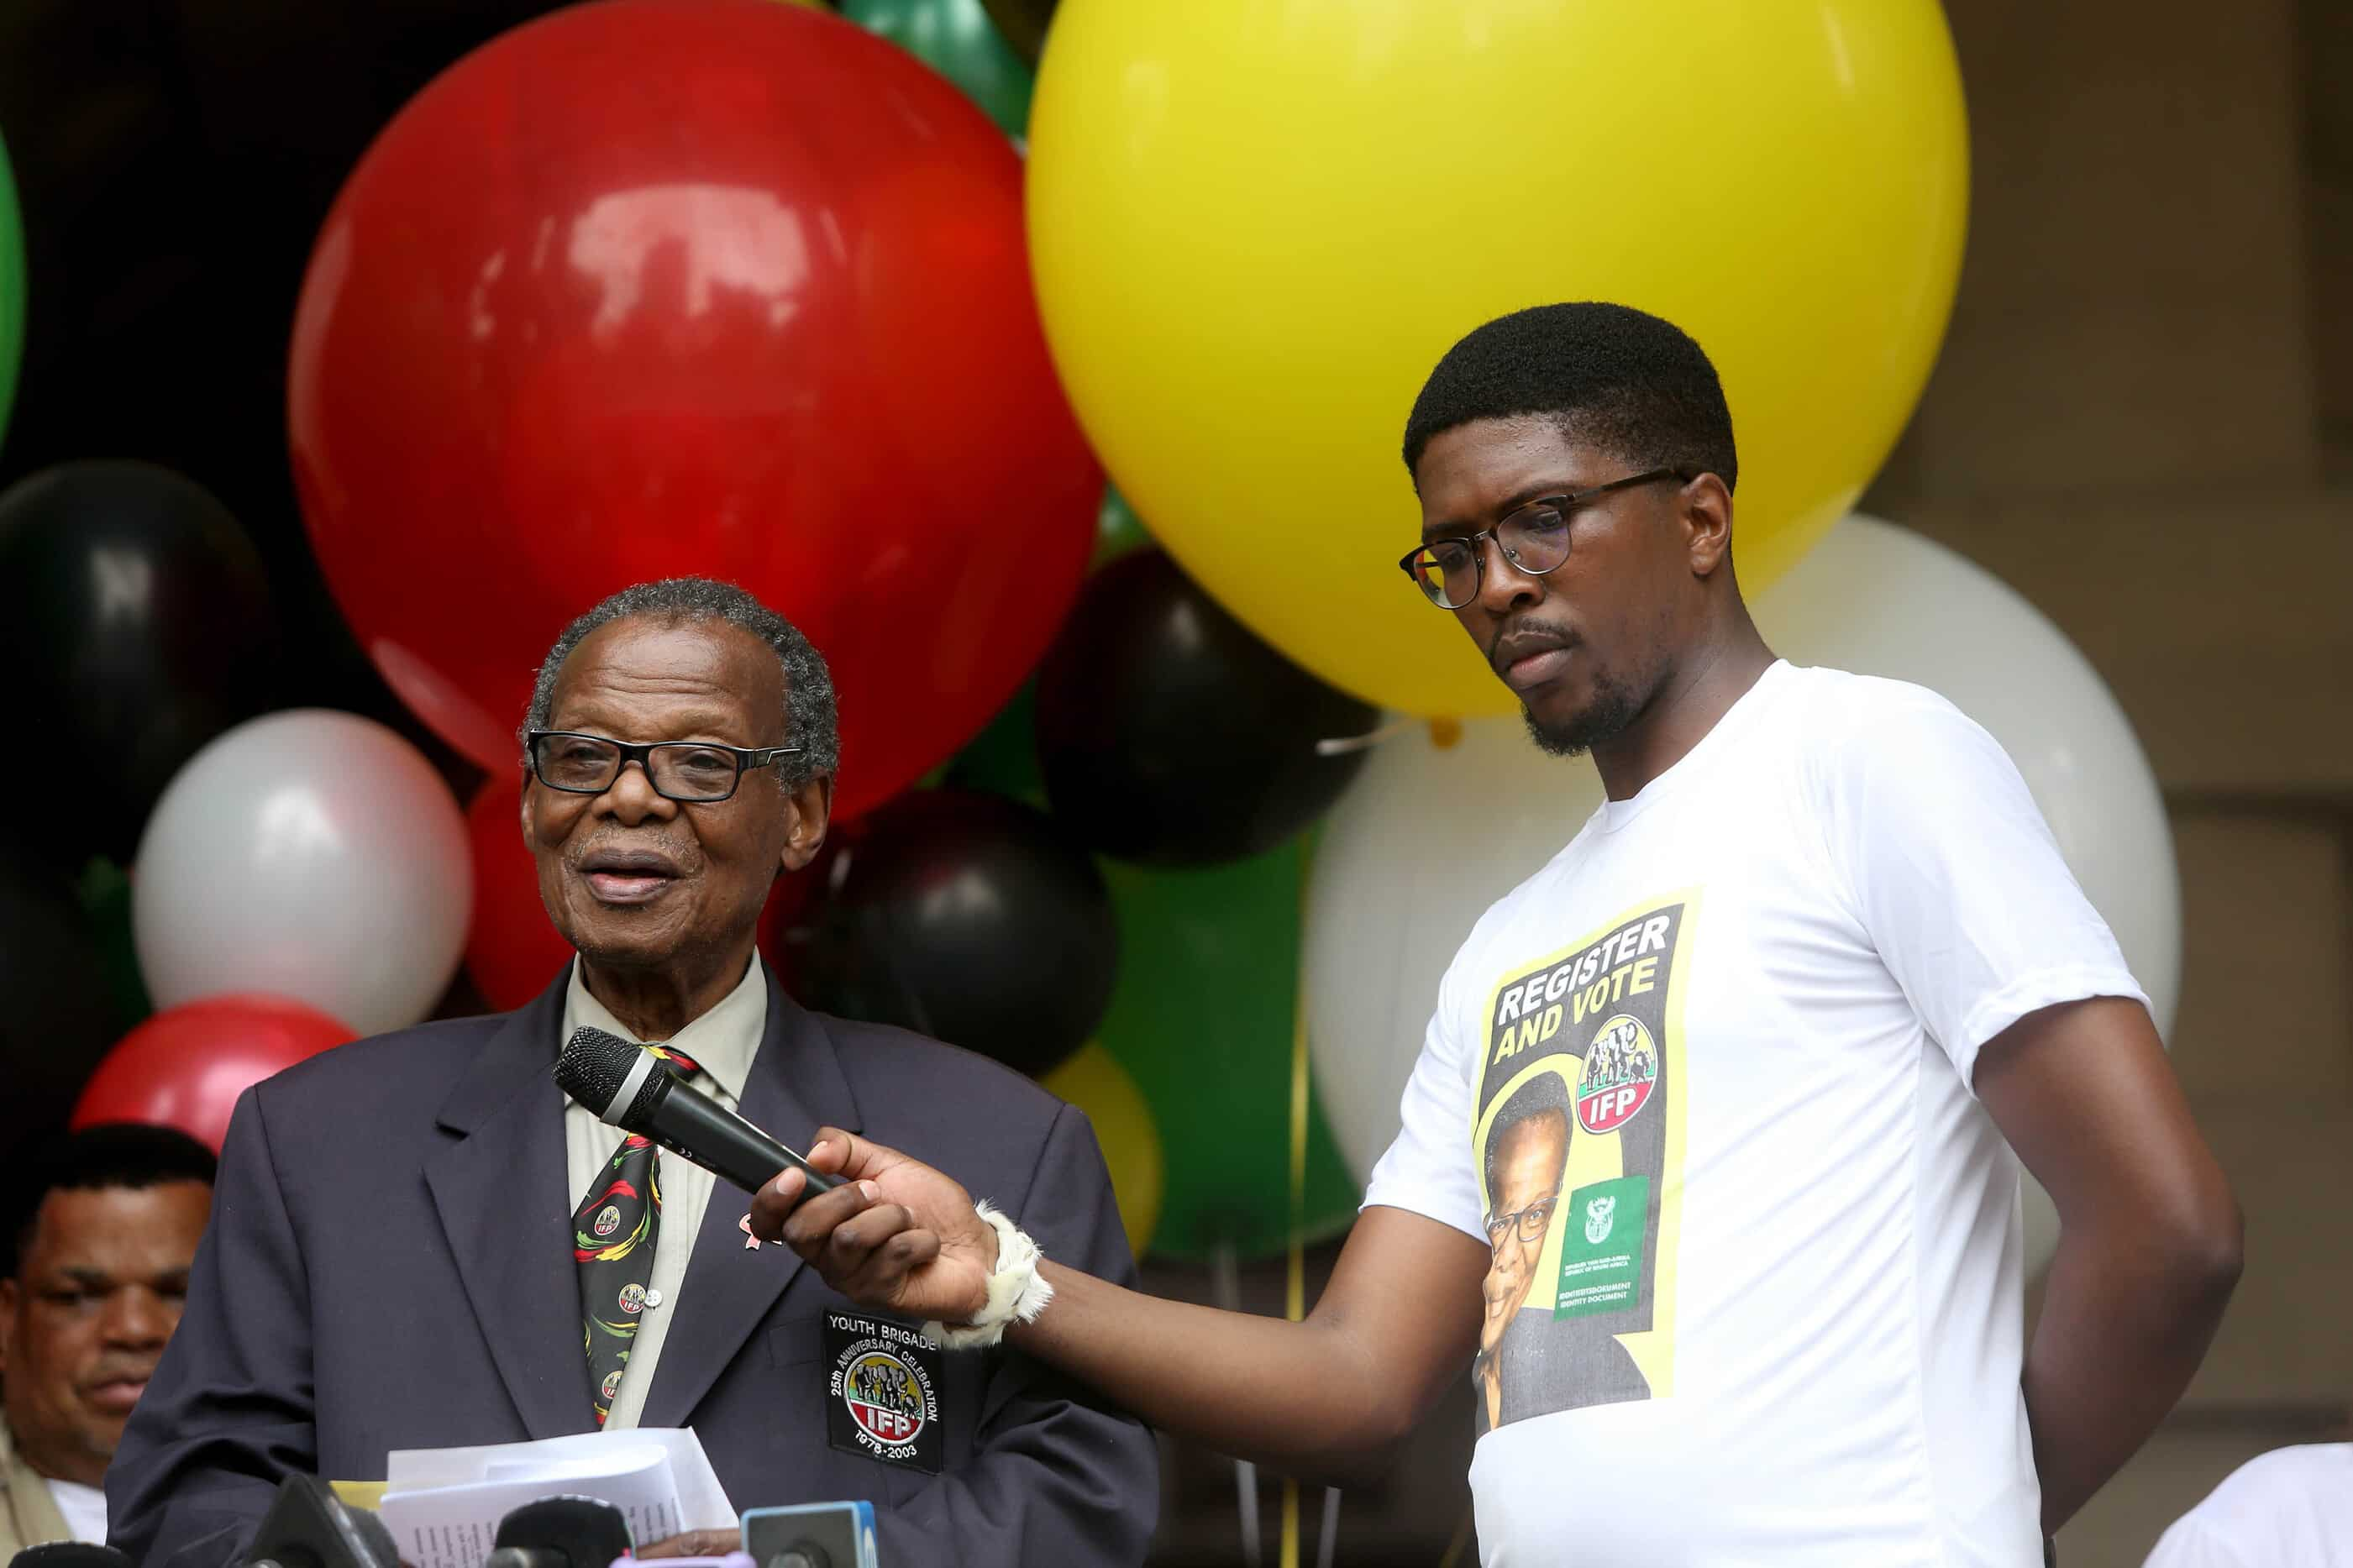 15 January 2019: IFP leader Mangosuthu Buthelezi urged his supporters to get ready to vote during the launch of his party's voter registration campaign outside the Durban City Hall. (Photograph by Gallo Images/Sowetan/Thuli Dlamini)